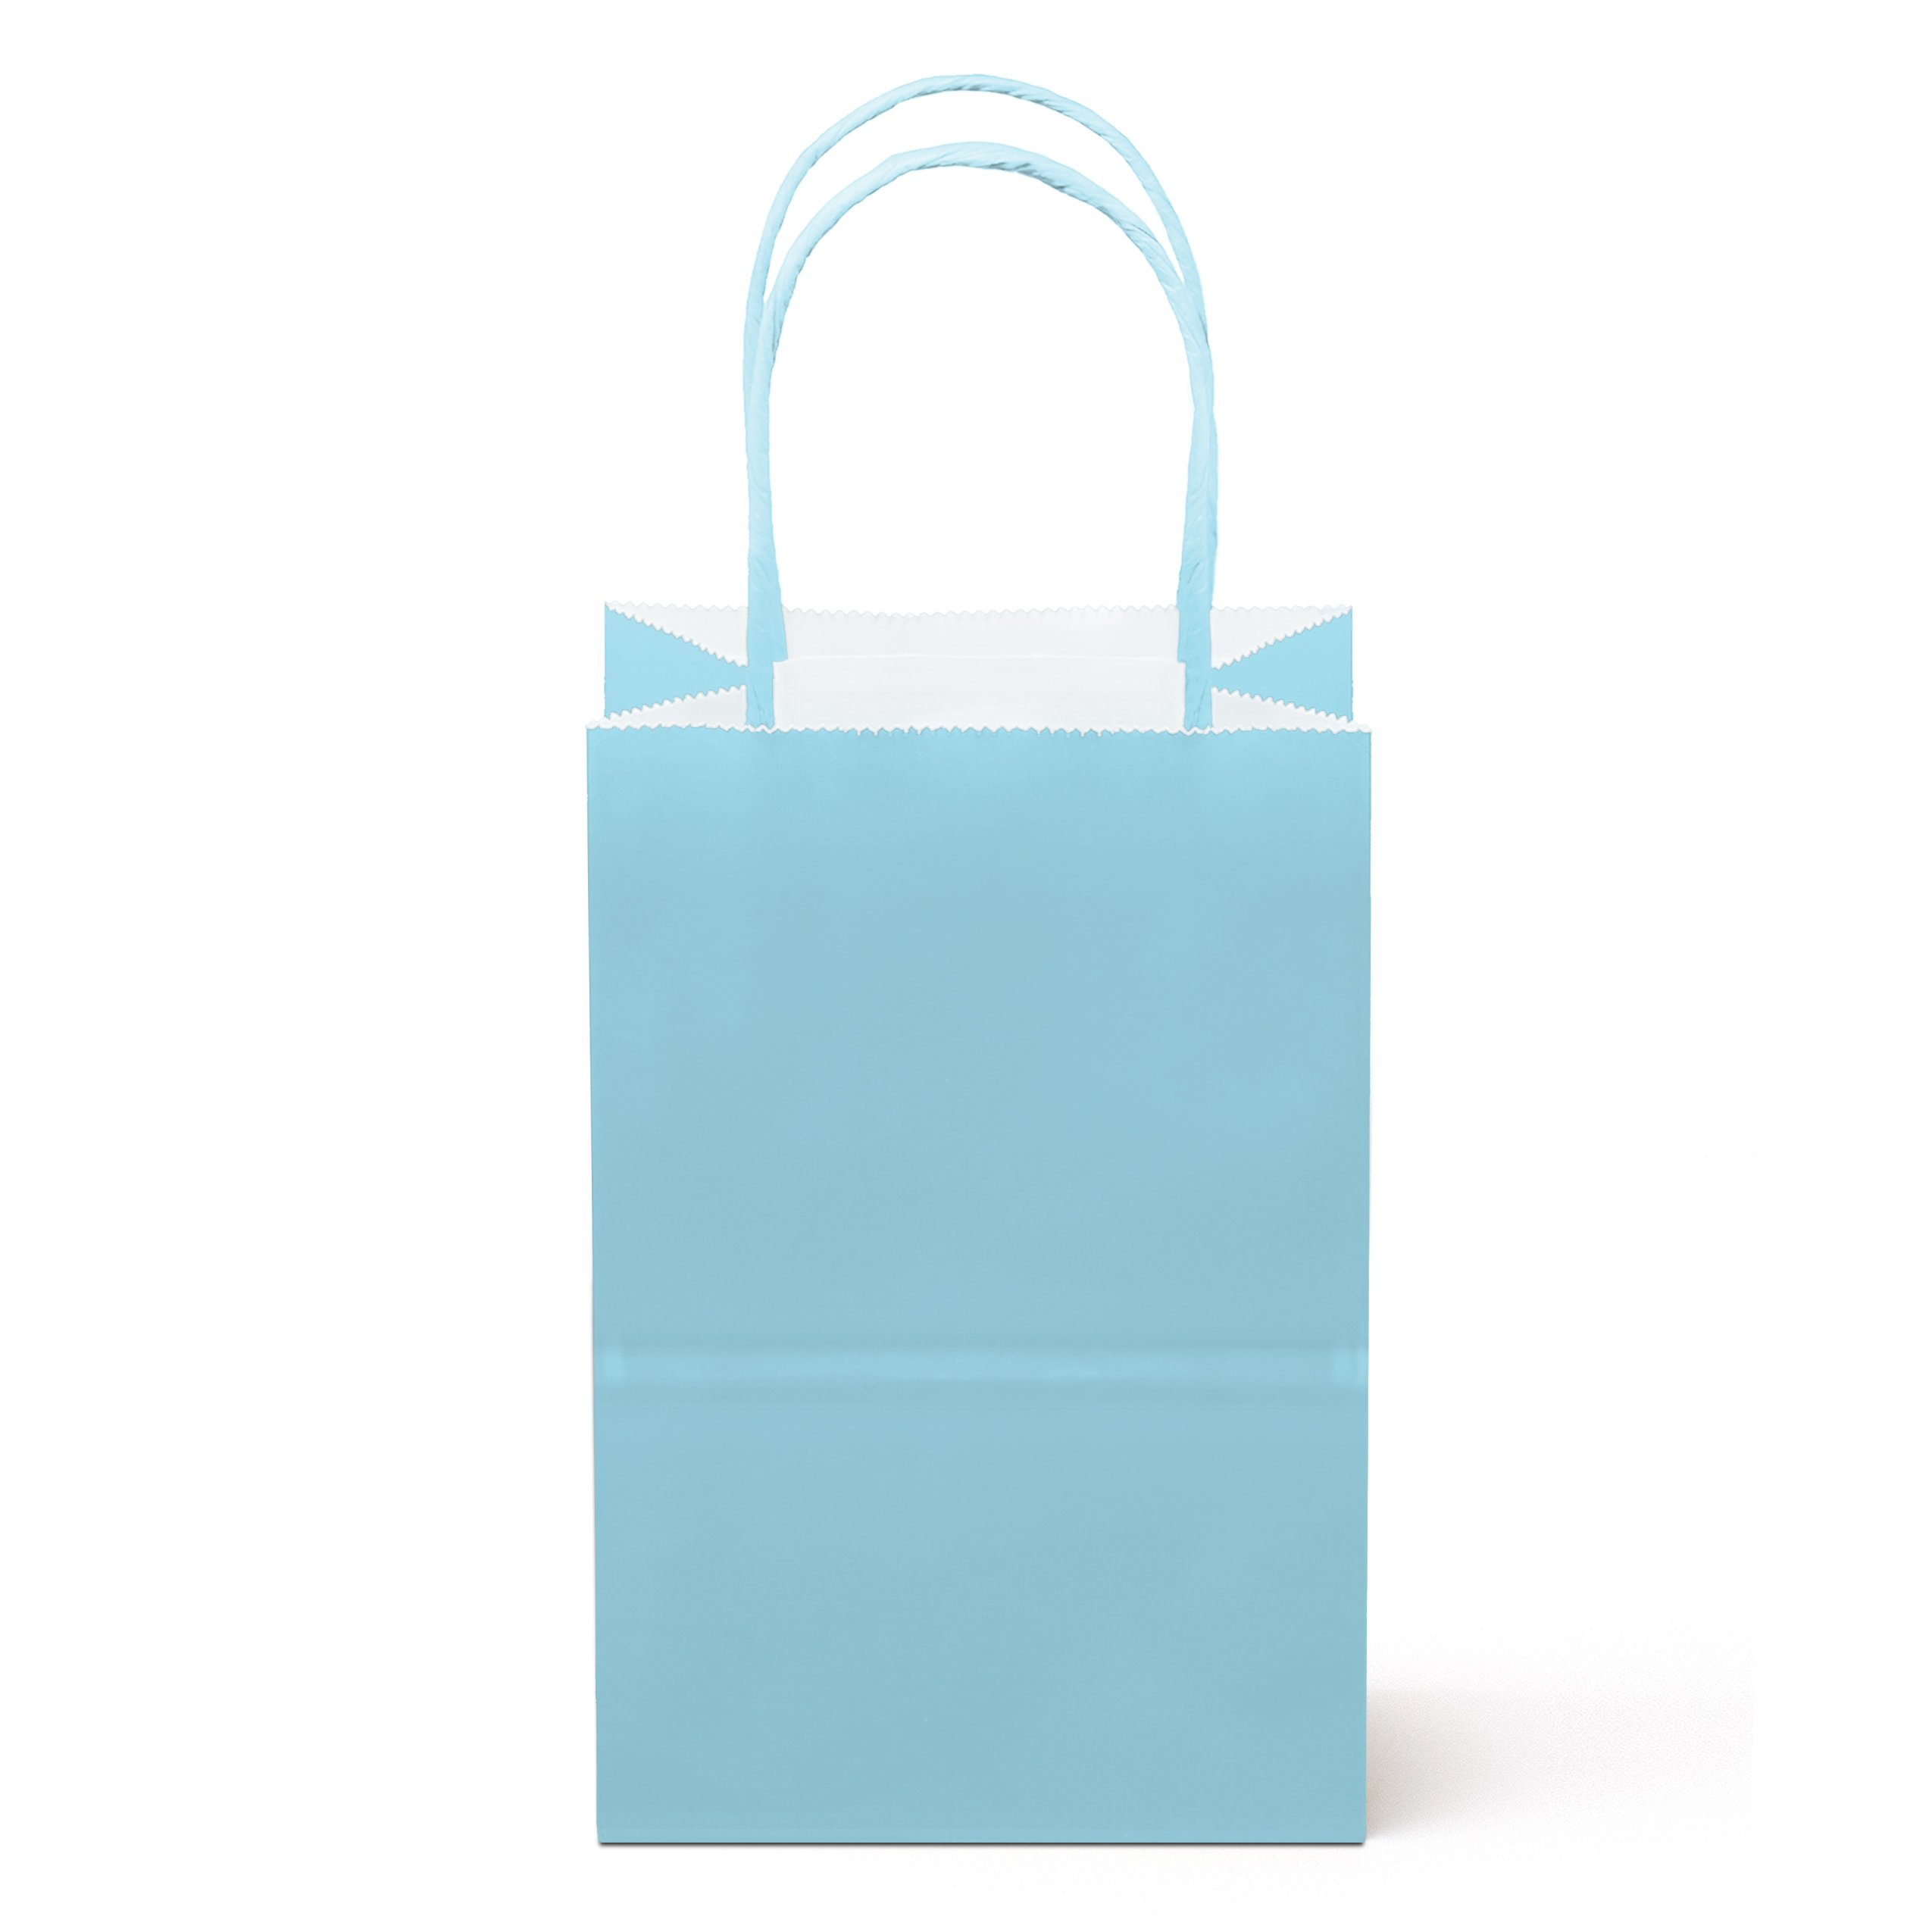 """24 Counts Food Safe Premium Paper and Ink Small 8.5"""" X 5.25"""", Vivid Colored Kraft Bag with Colored Sturdy Handle, Perfect for Goodie Favor DIY Bag, Environmentally Safe (Small, Light Blue)"""